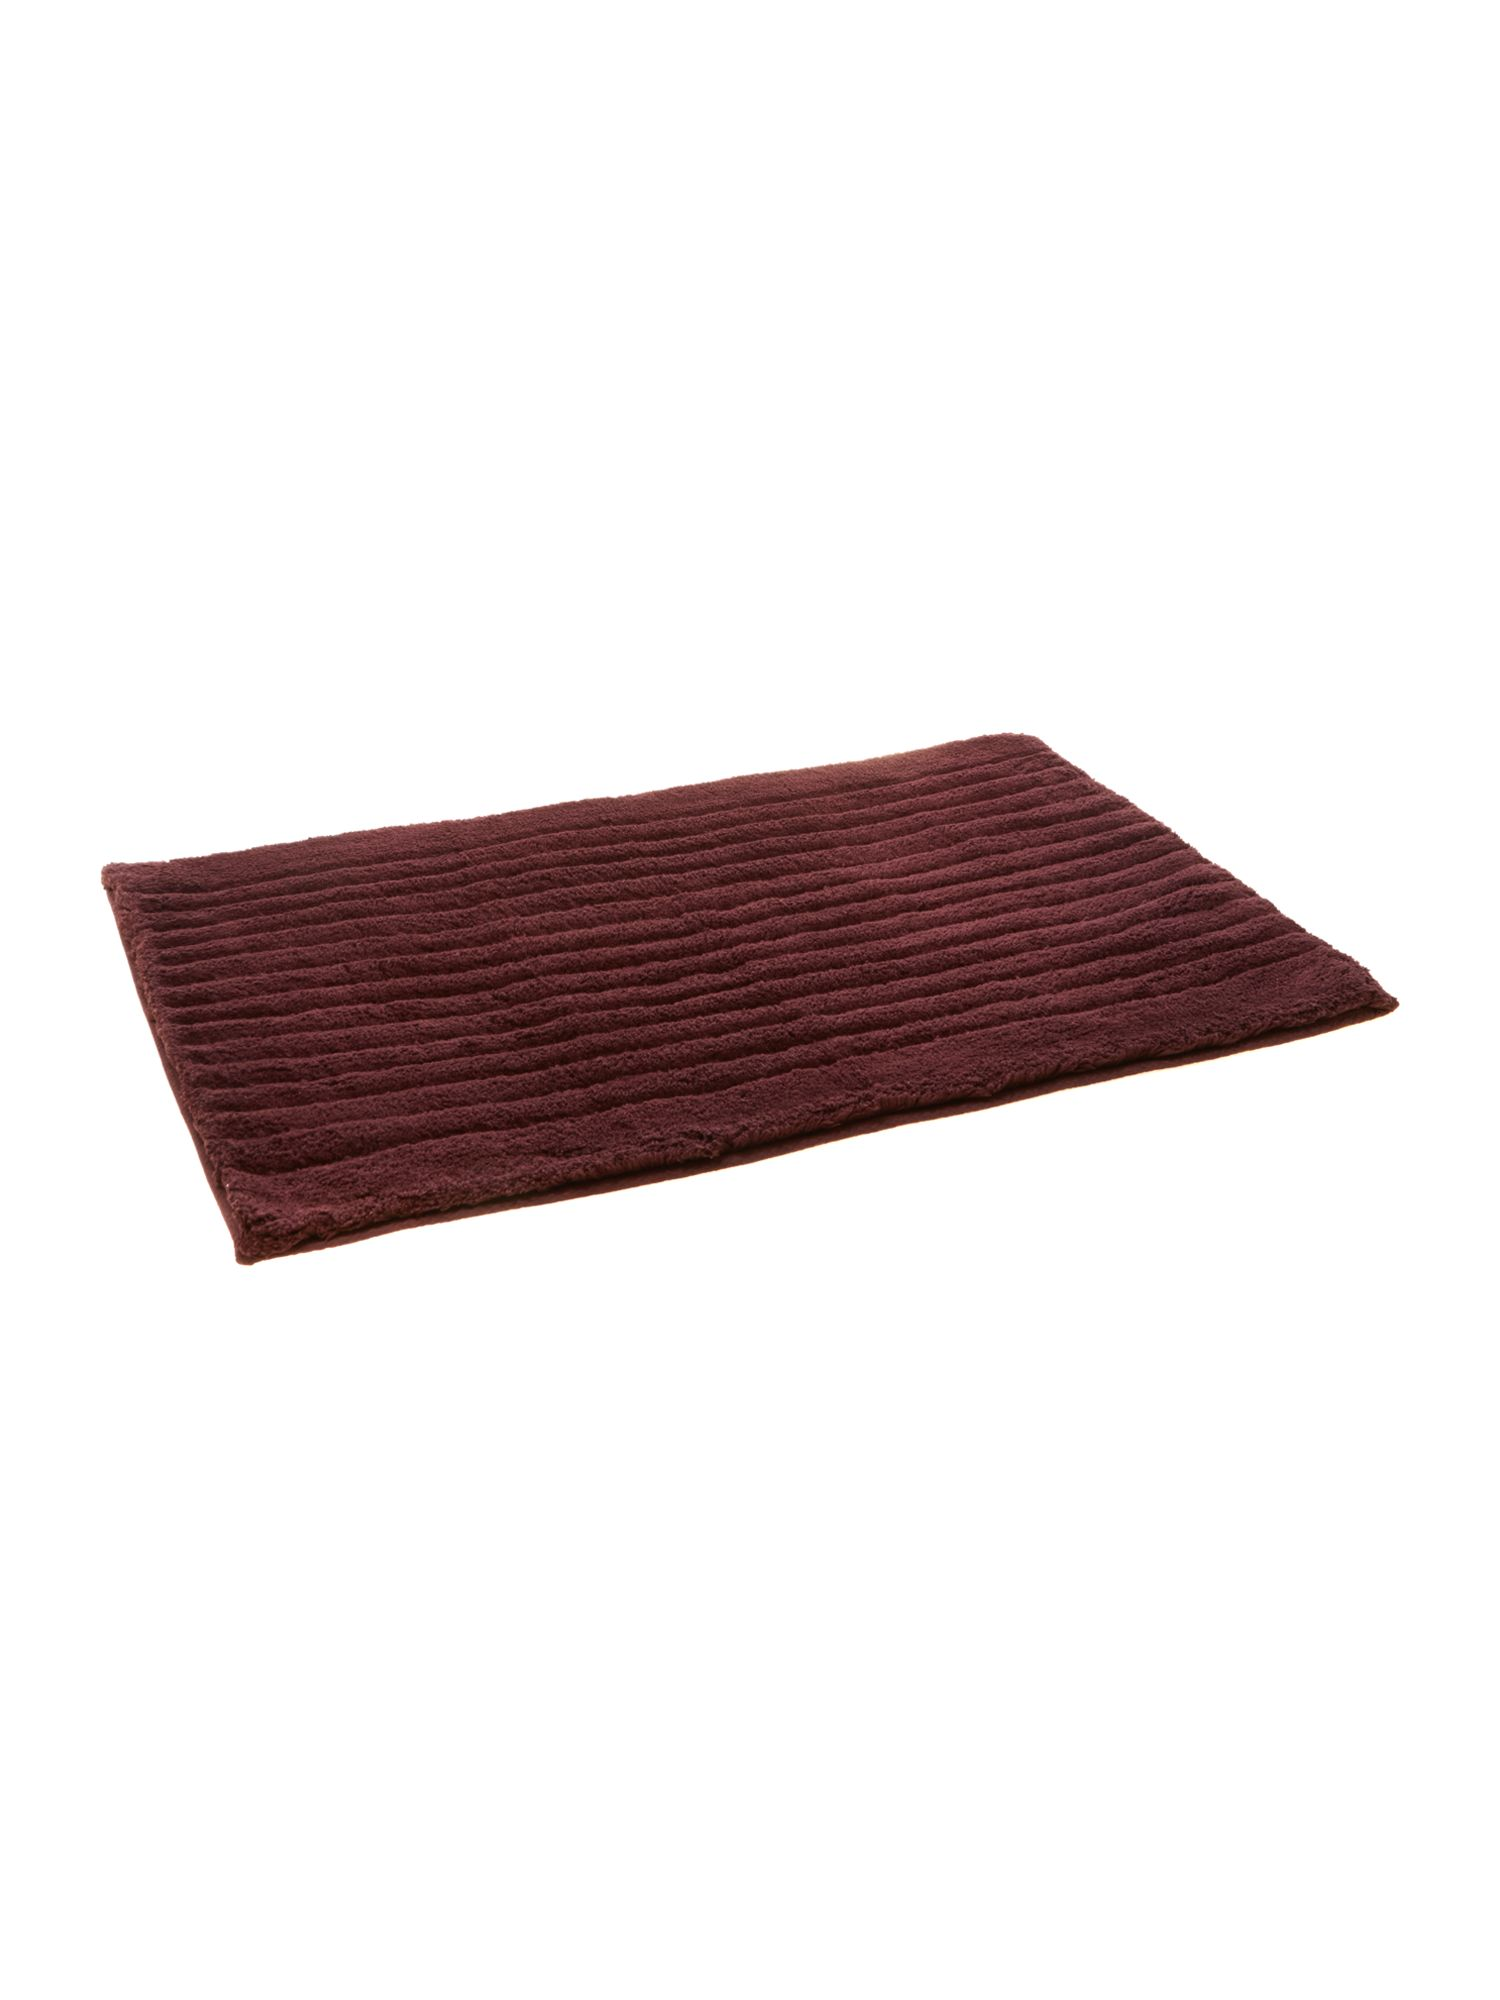 Casa Couture Luxury Bathmat Bordeaux